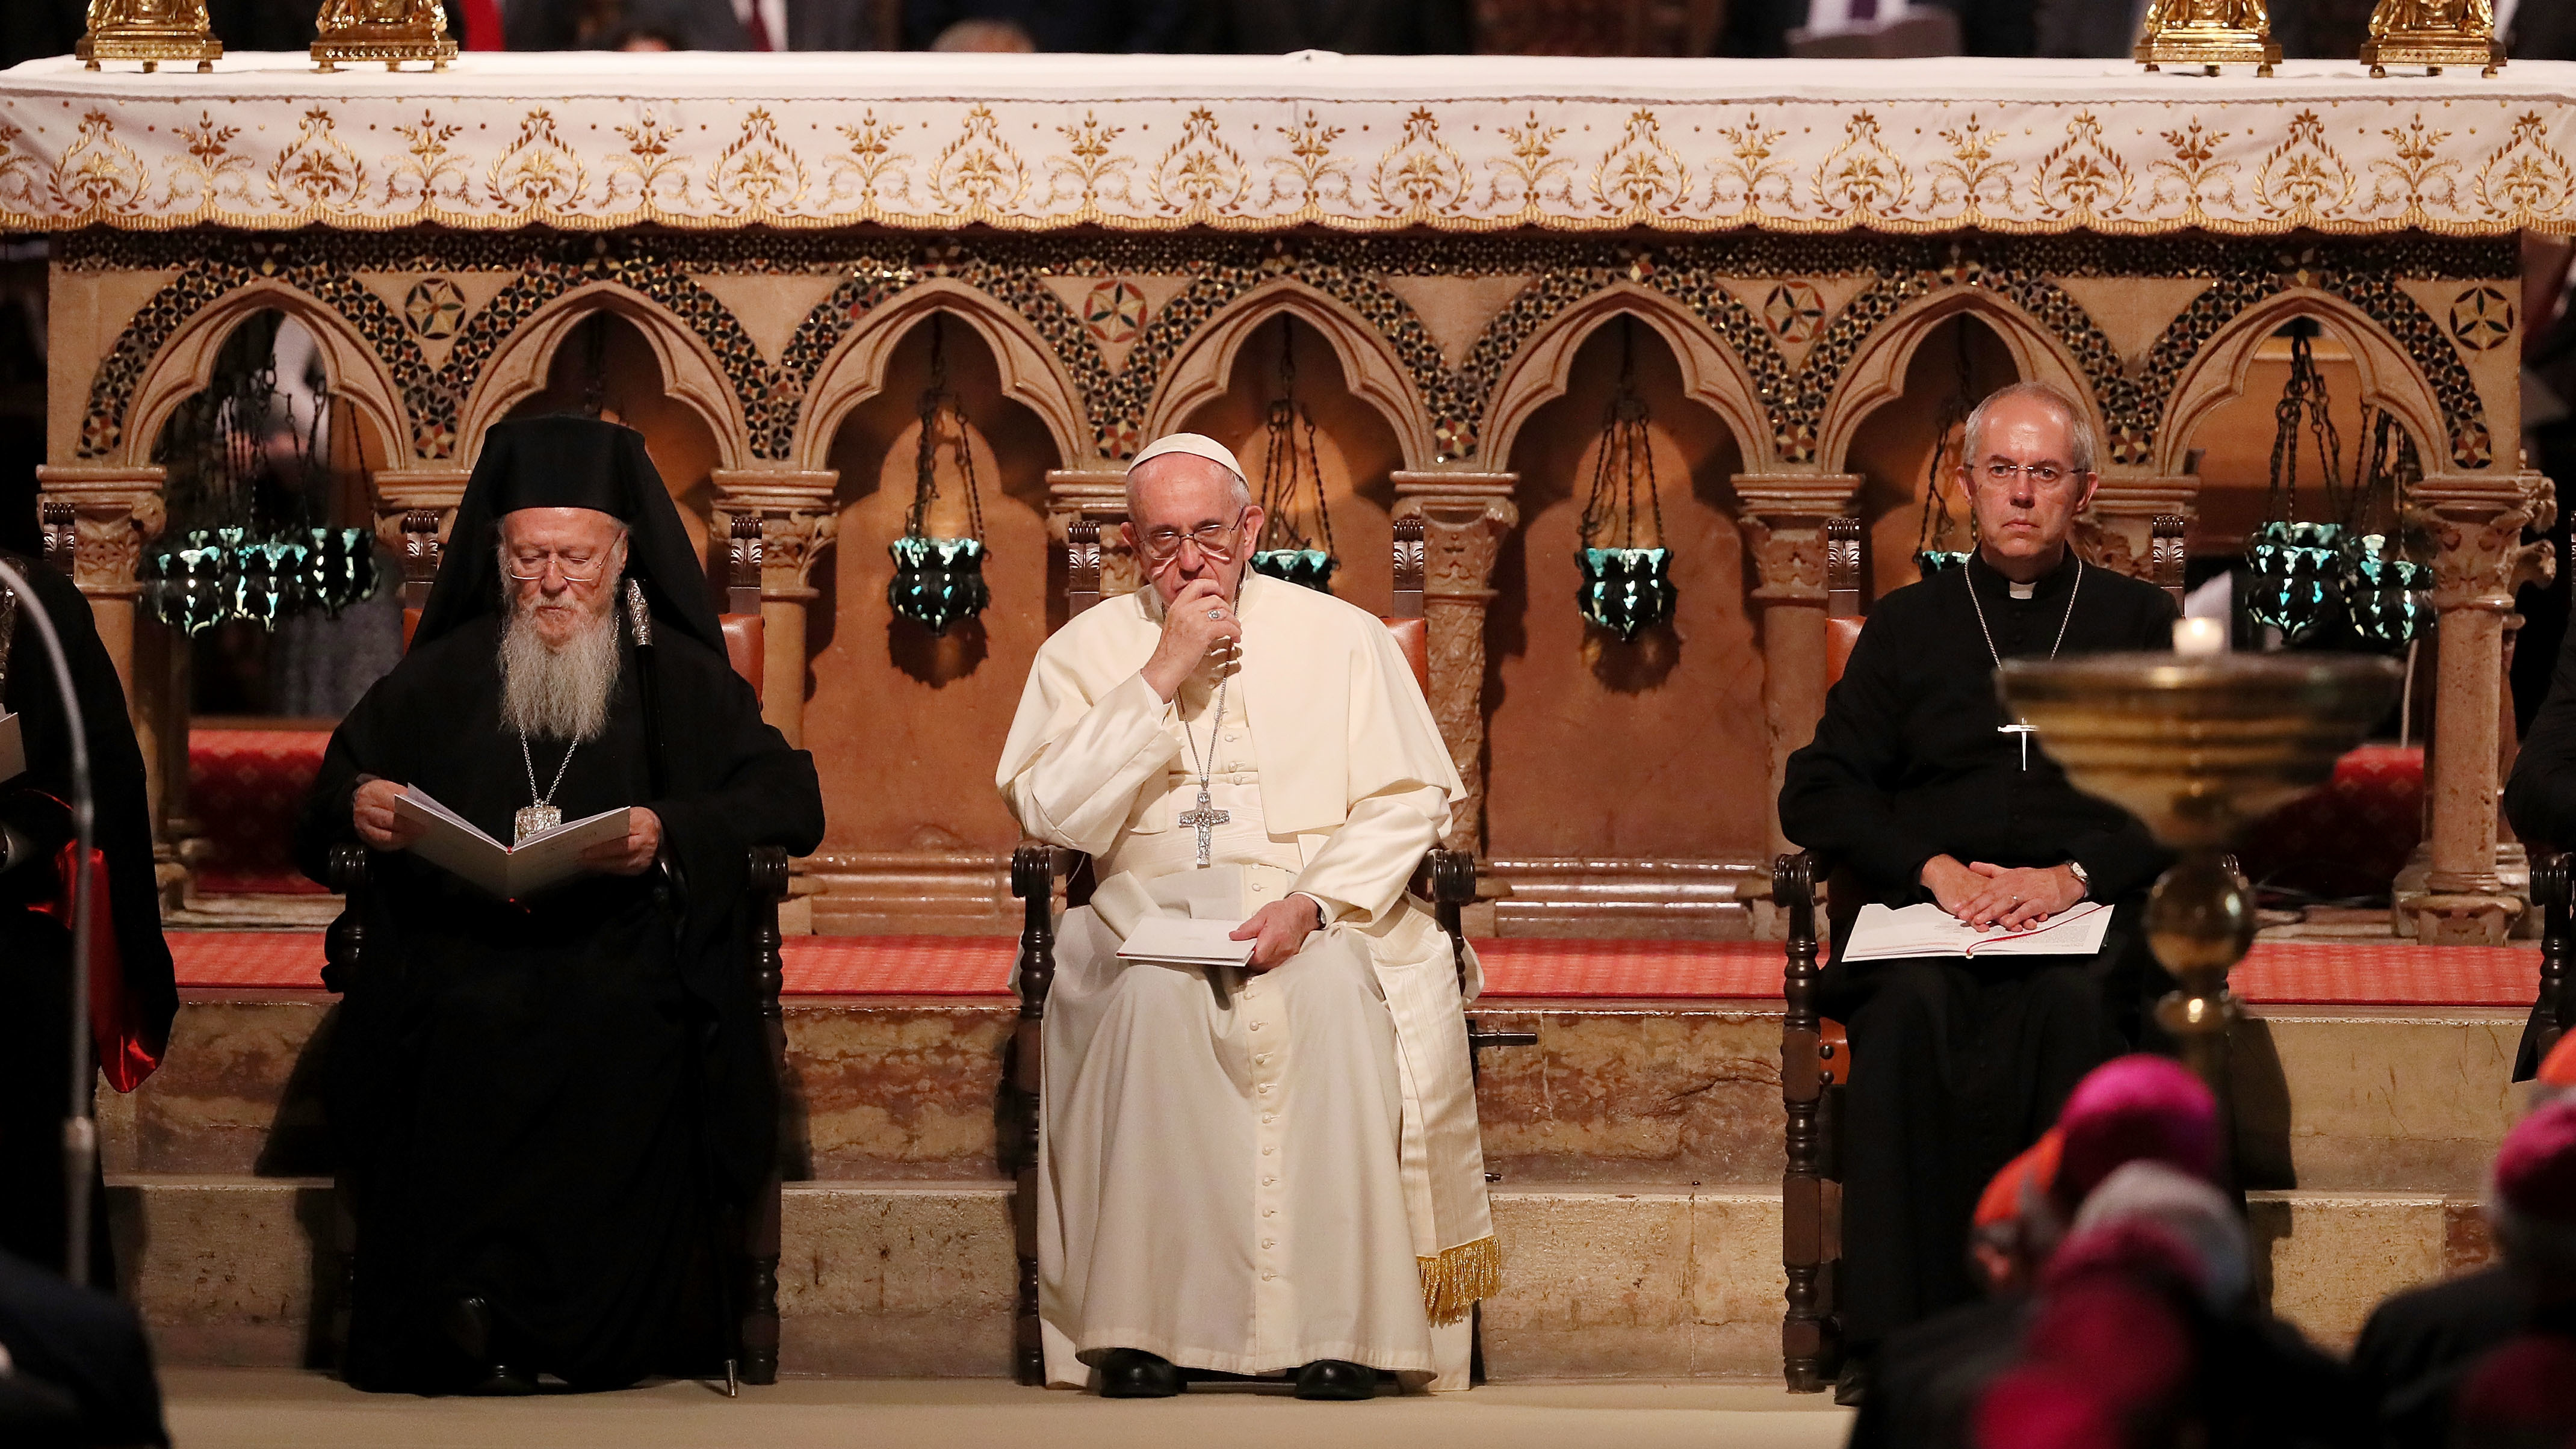 Pope Francis, Archbishop of Canterbury Justin Portal Welby and Archbishop of Constantinople and Ecumenical Patriarch Bartholomew, shown at a meeting of prayer in the Basilica of St. Francis in 2016, are asking for climate action.